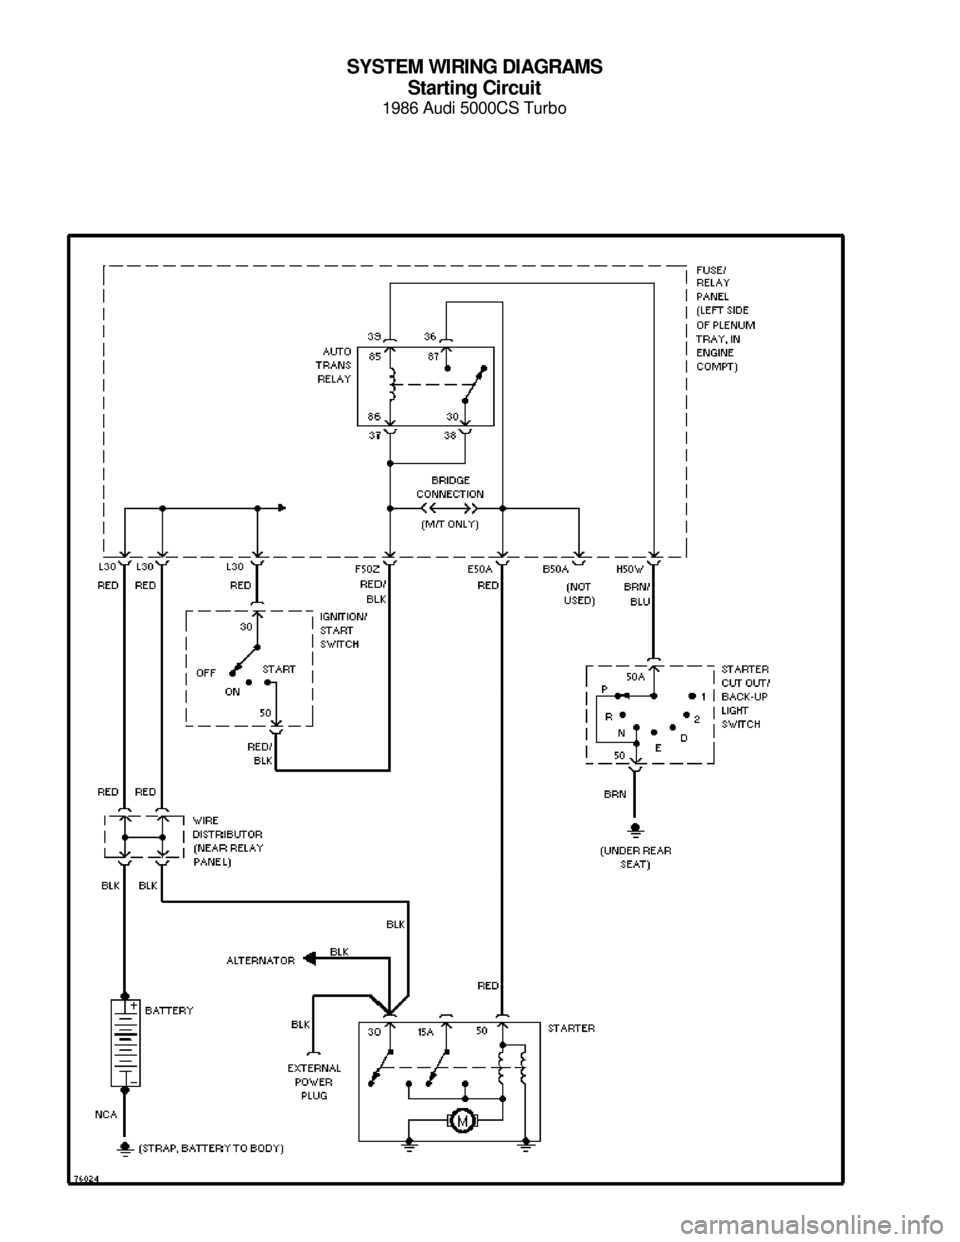 AUDI 5000CS 1986 C2 System Wiring Diagram SYSTEM WIRING DIAGRAMS Starting Circuit 1986 Audi 5000CS Turbo For x     Copyright © 1998 Mitchell Repair Information Company, LLCMonday, July 19, 2004  05:53PM